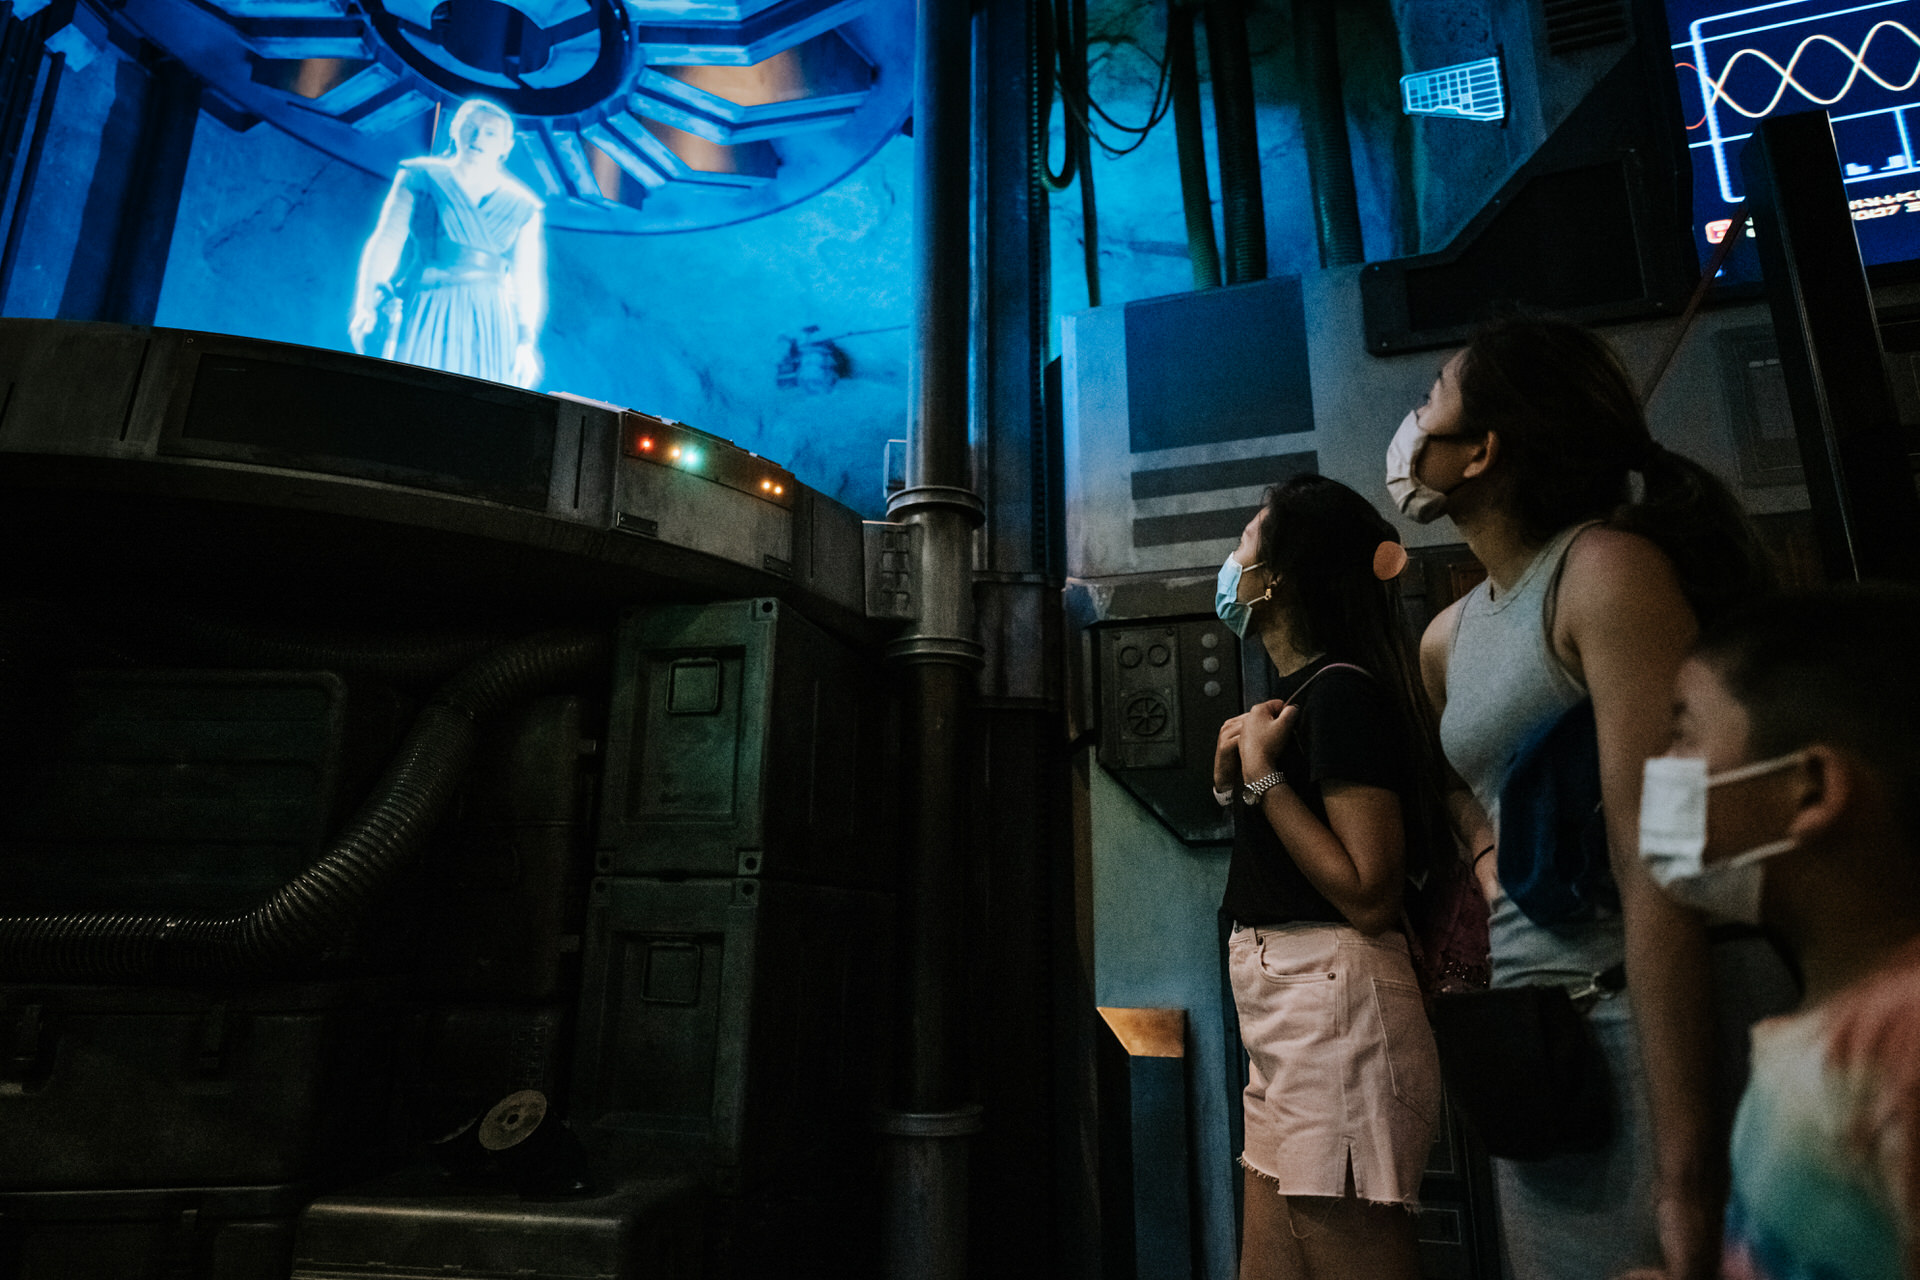 family watches transmission from Rey at Rise of the Resistance